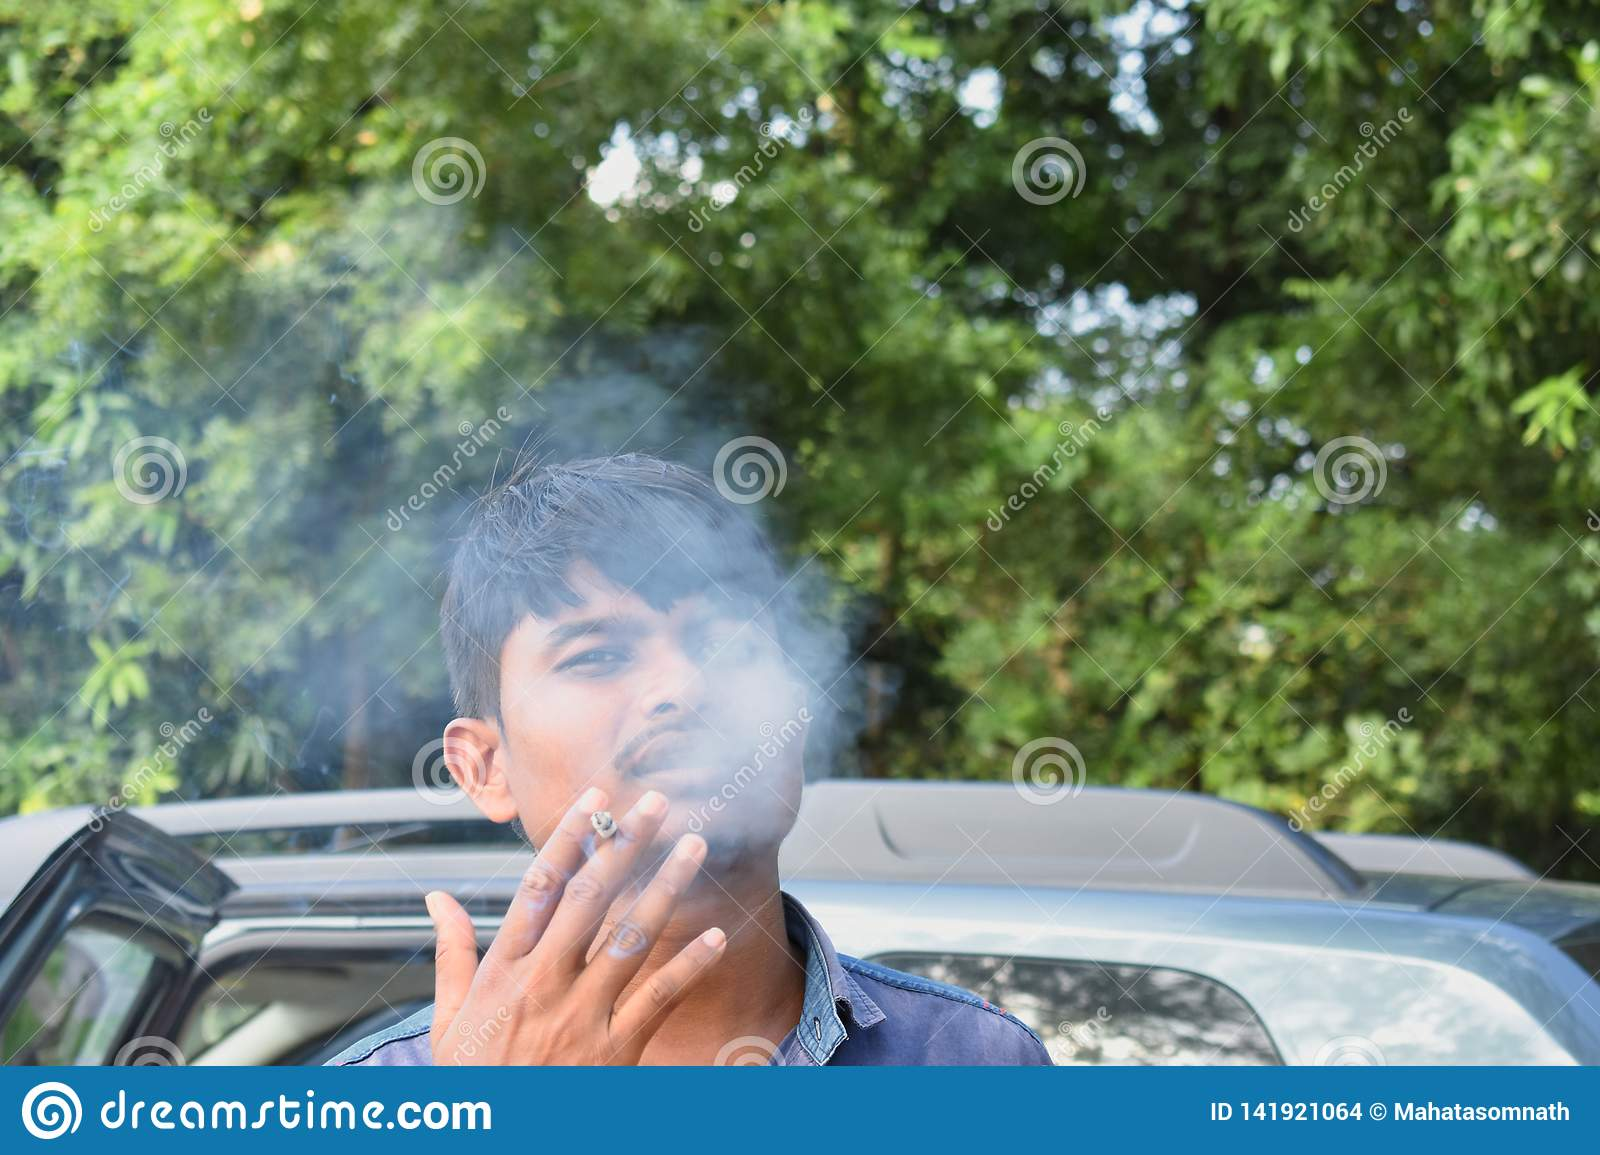 A man smoking with an attitude